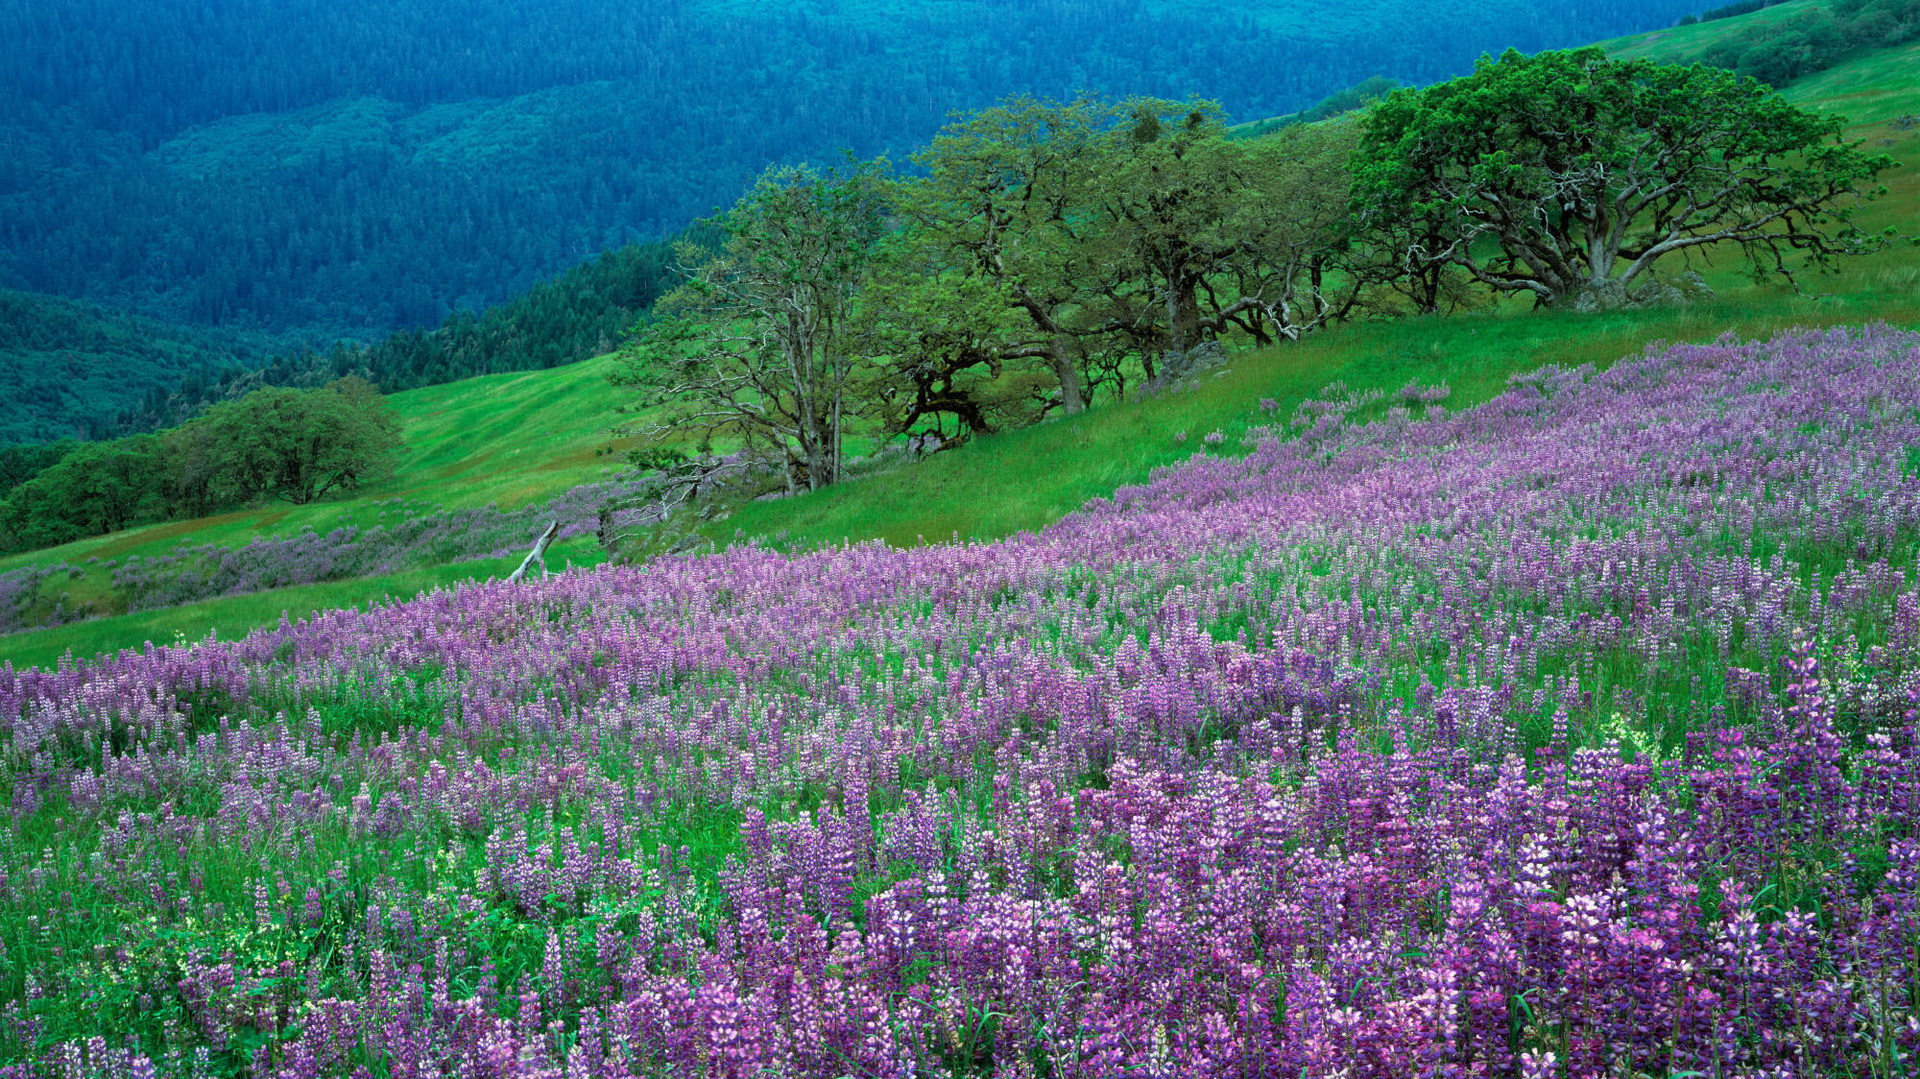 click to free download the wallpaper--natural scenery photos - Purple Flowers in Bloom, Green Trees on the Hillside, What a Scene! 1920X1080 free wallpaper download